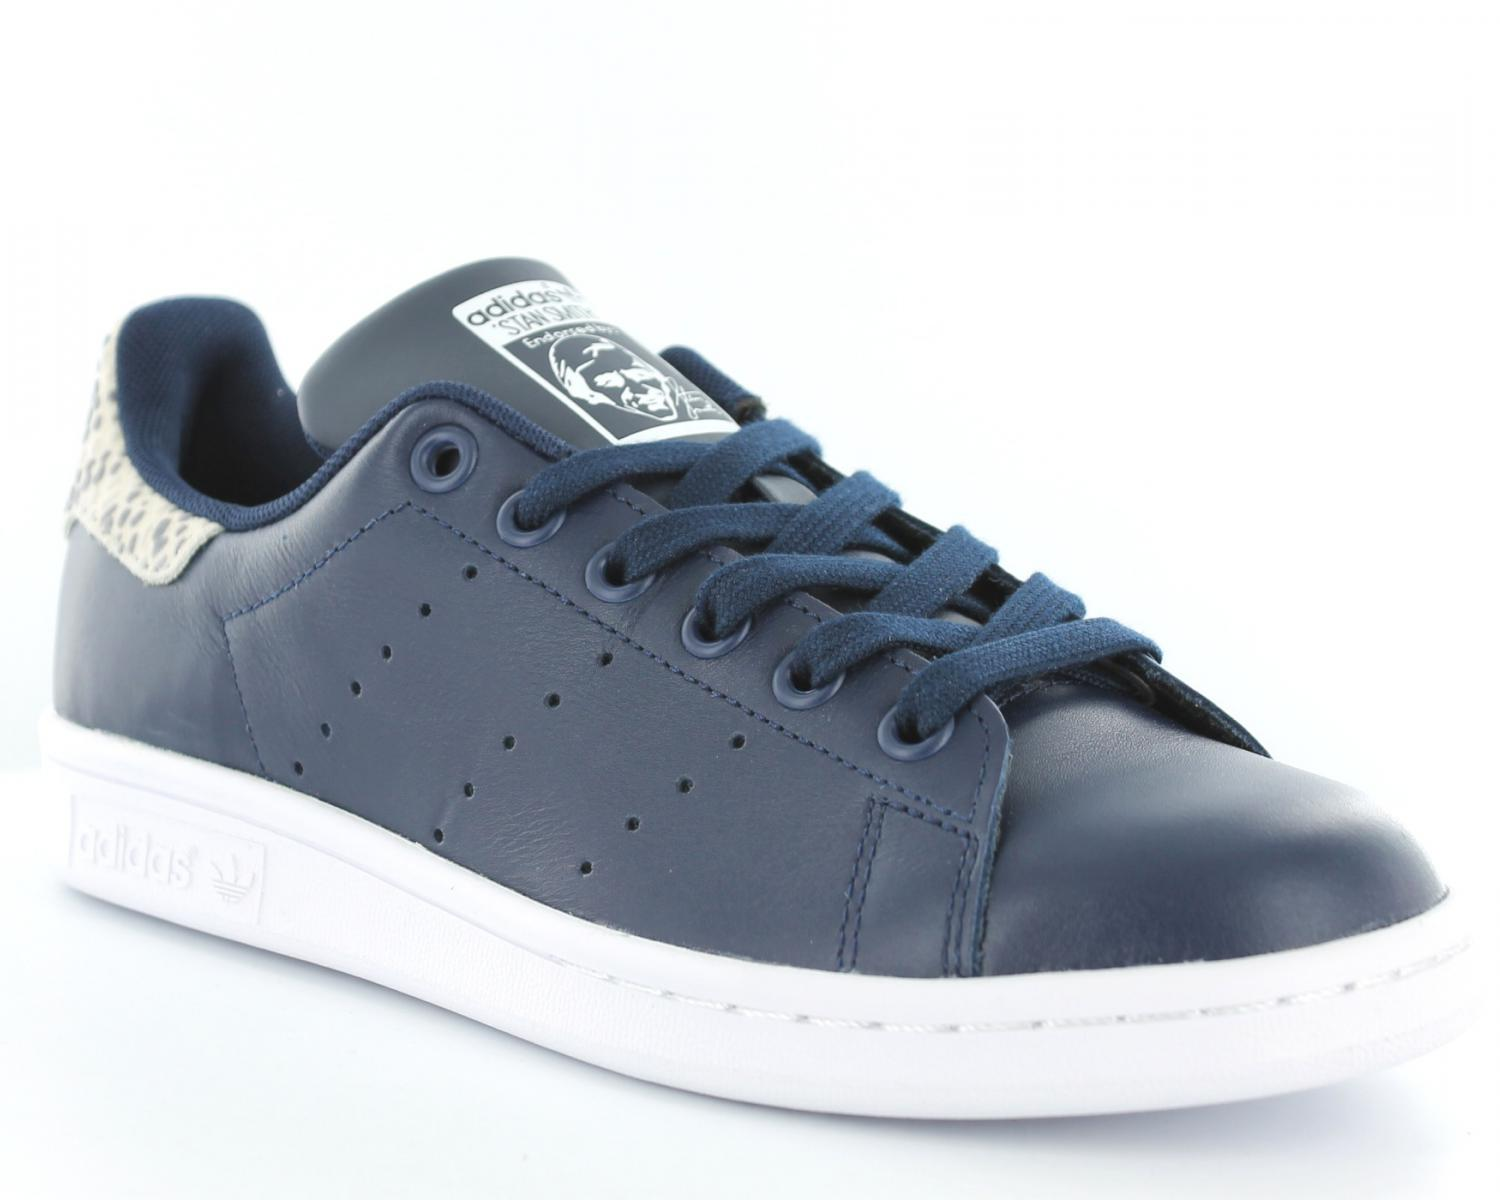 adidas stan smith femme grise